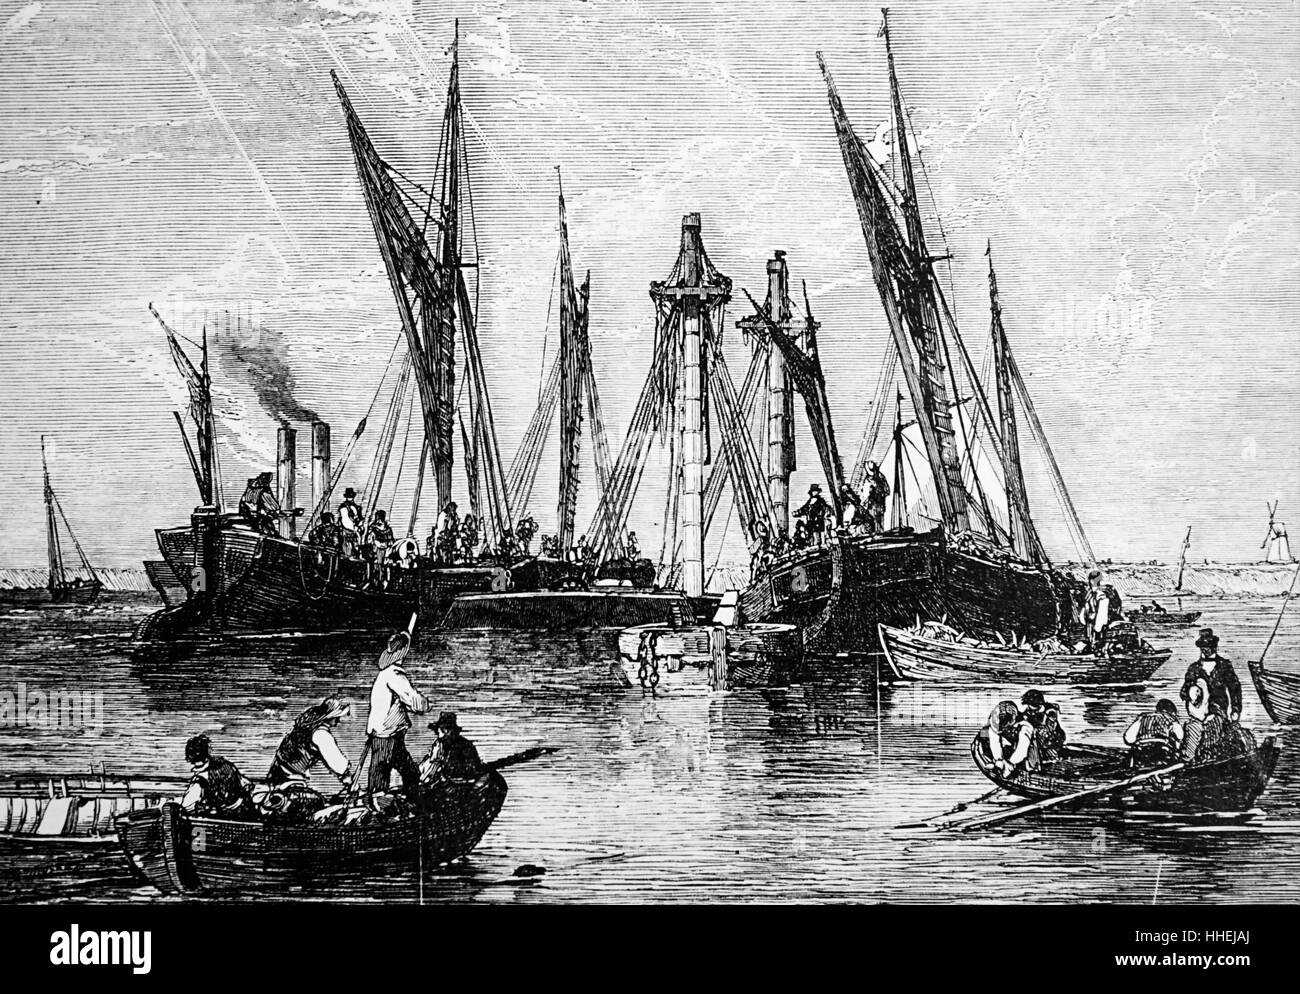 Illustration depicting the raising of the barque 'Samuel' in the Thames near Gravesend. Dated 19th Century - Stock Image